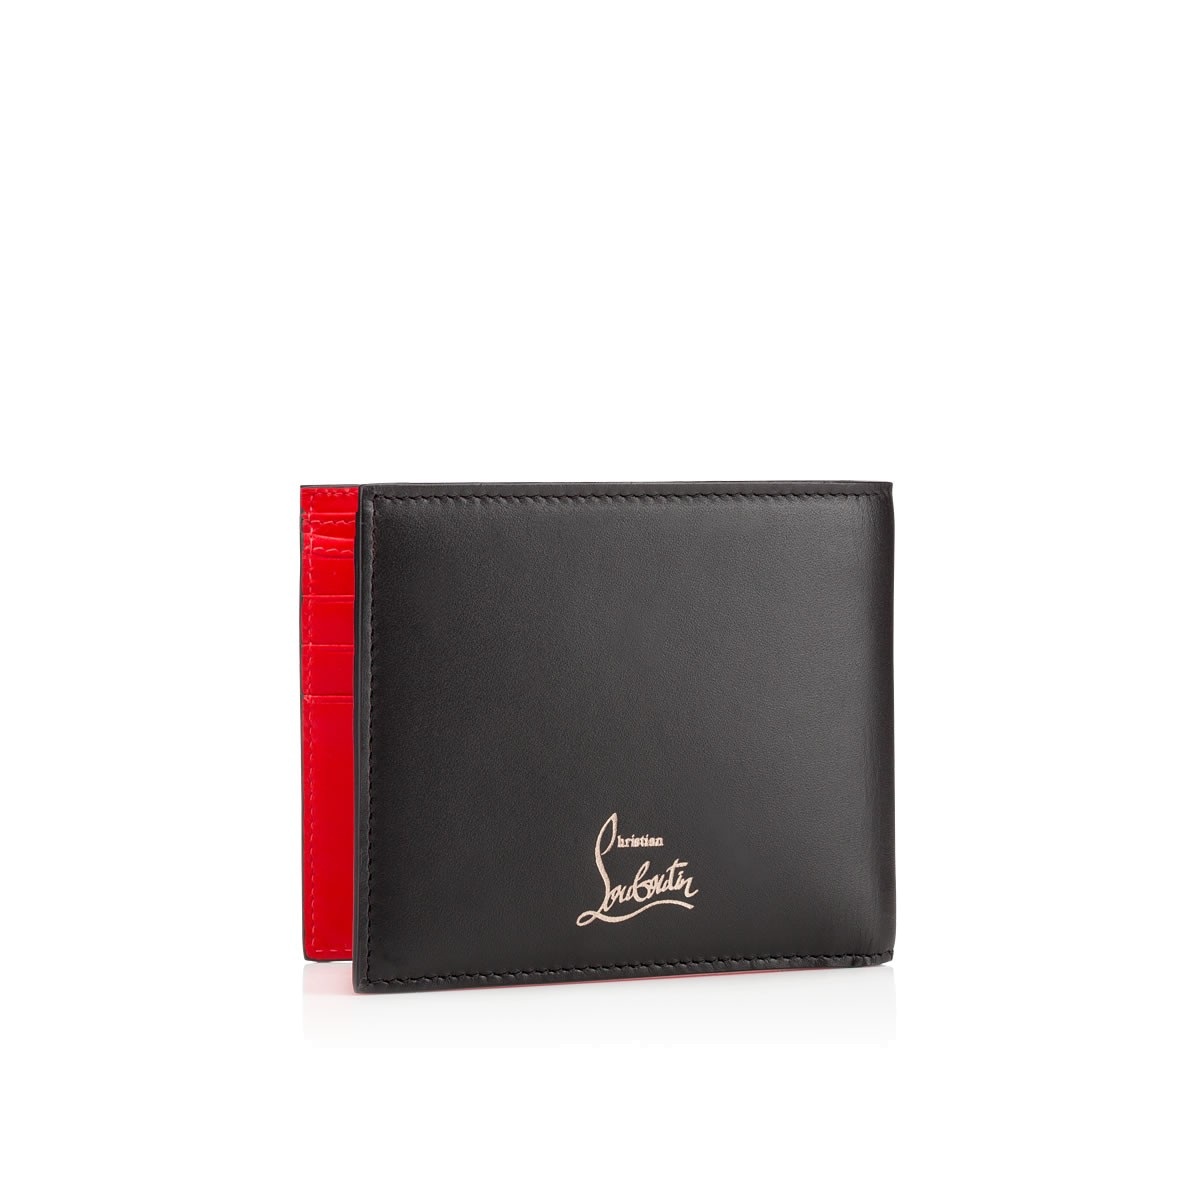 Lyst Christian Louboutin Kaspero Wallet In Black For Men